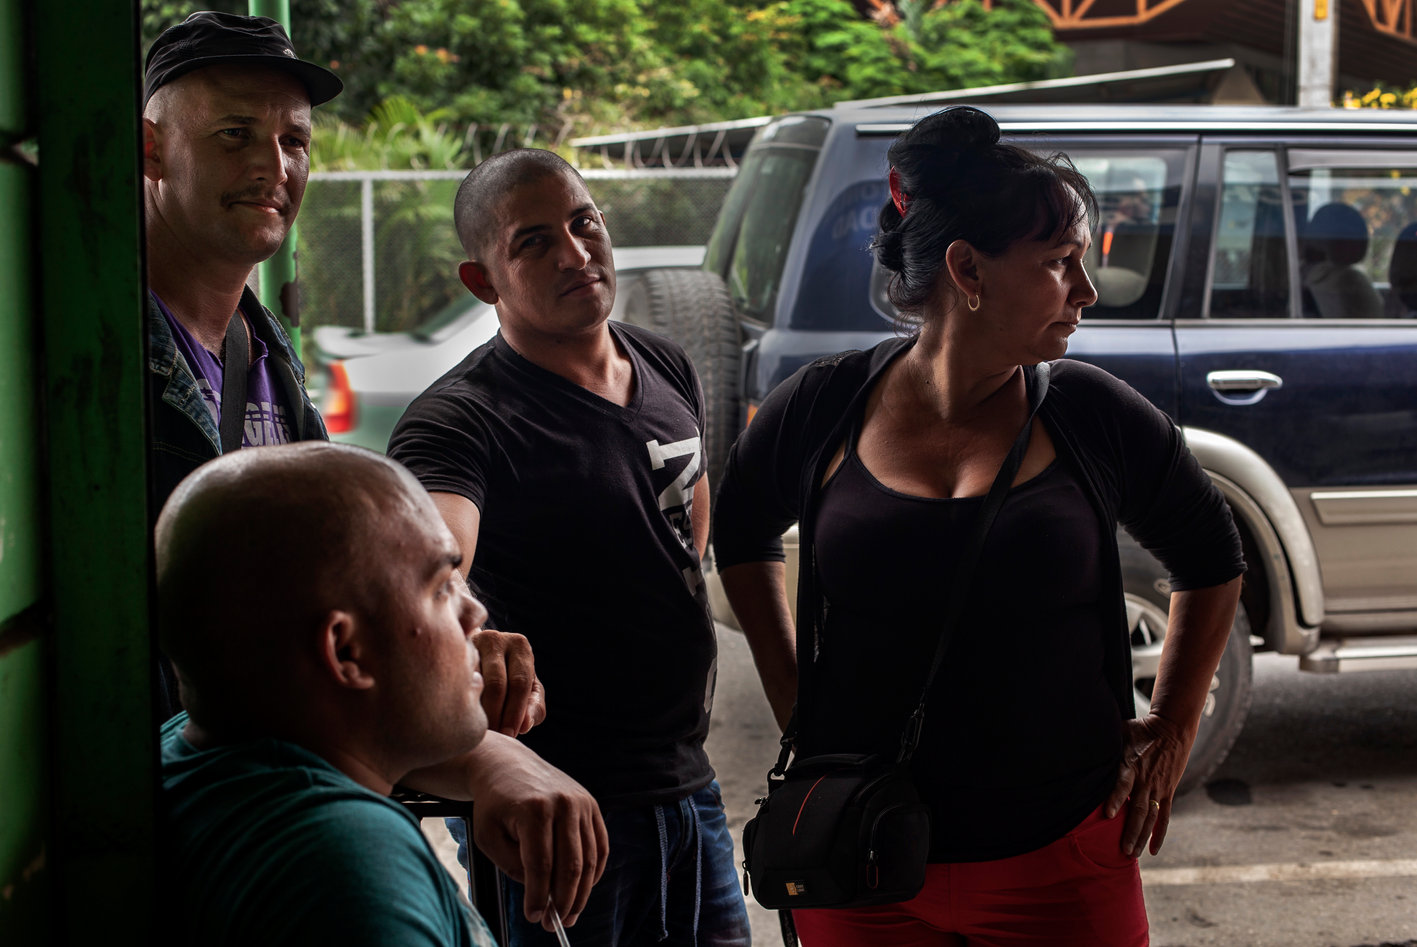 A group of cubans wait for a caravan to pick them up near the Carniceria. So far there have been zero arrests for Human smuggling. Usually the caravans don't stop except for gass, and travelers have to take relieve themselves in bottles and boxes they bring along for the ride. They say it can take typically two days to reach Mexico.